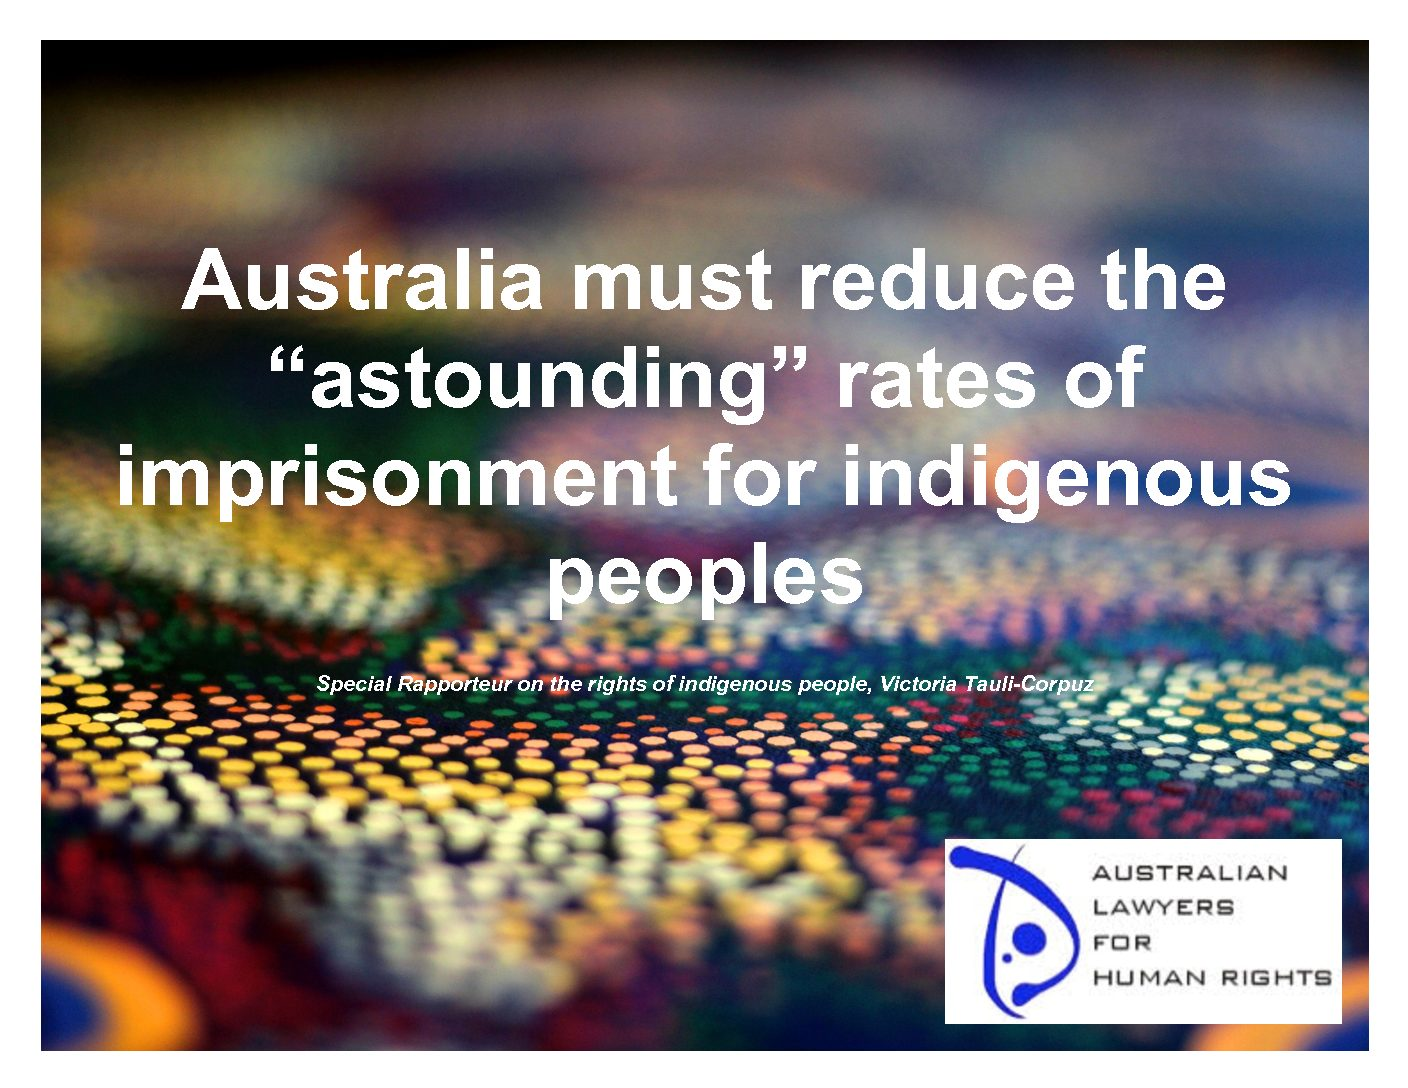 law reform on native title Law reports push piecemeal changes to native title,  this fate befell another landmark inquiry, the law reform commission of western australia's .